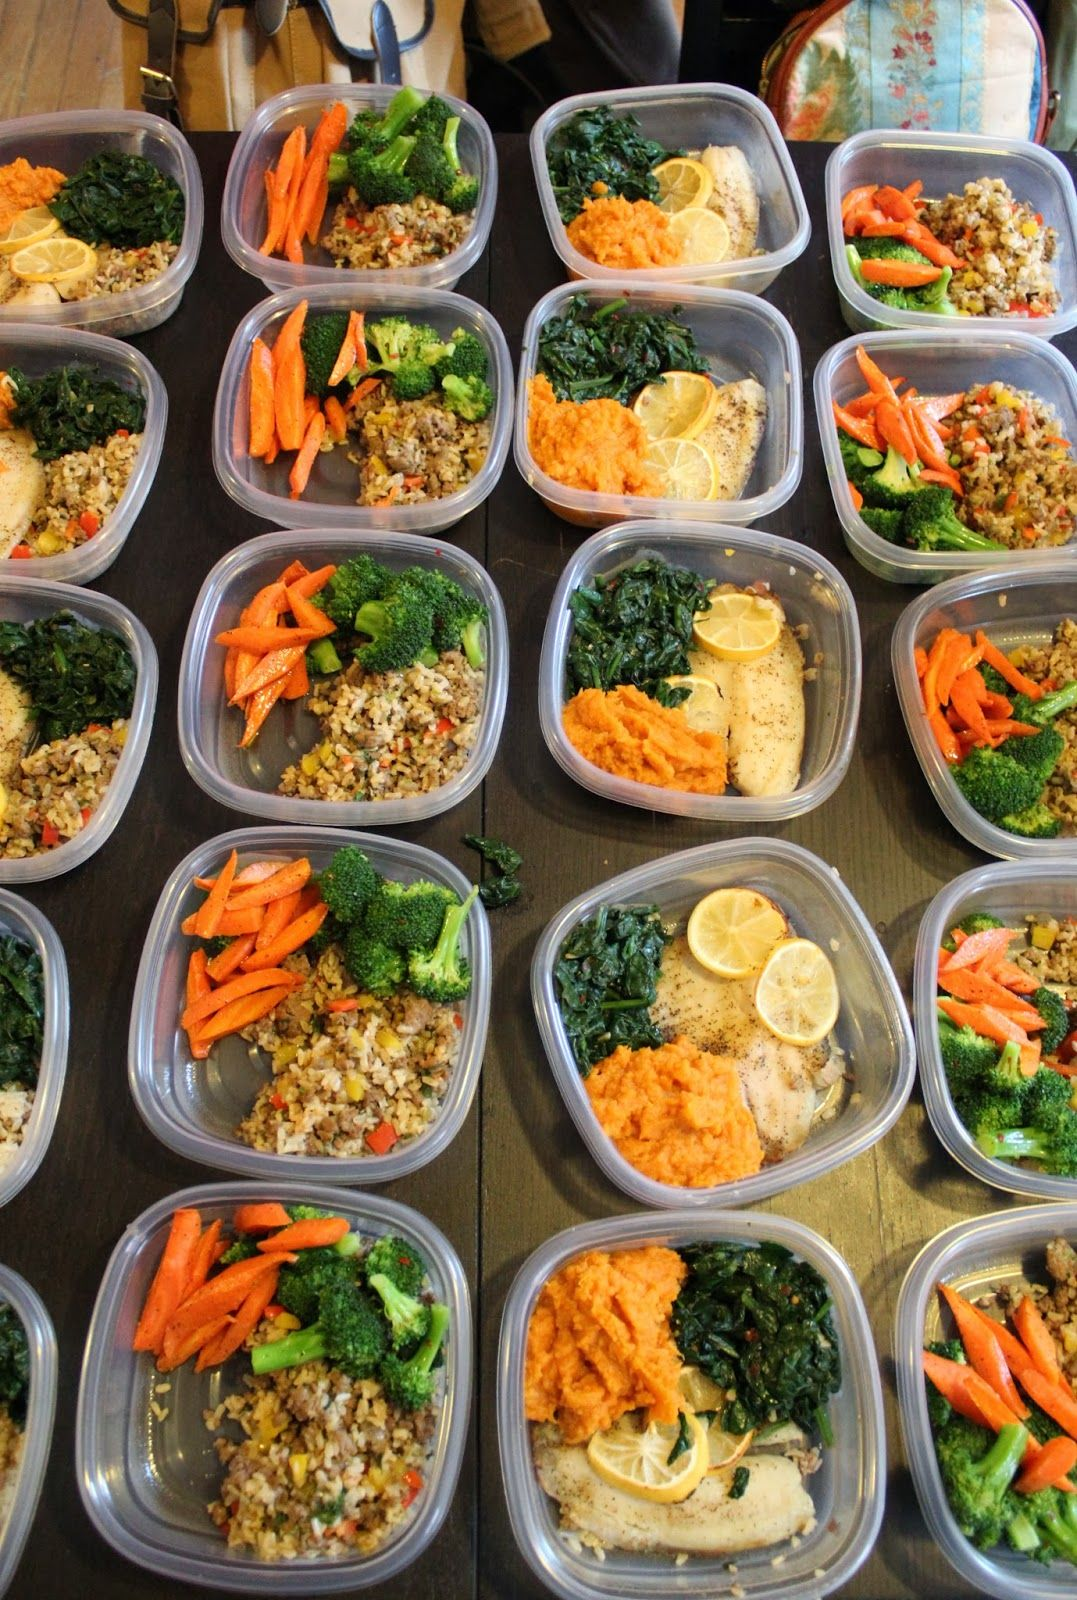 Watch 6 Easy Meal Prep Strategies for Weight Loss video